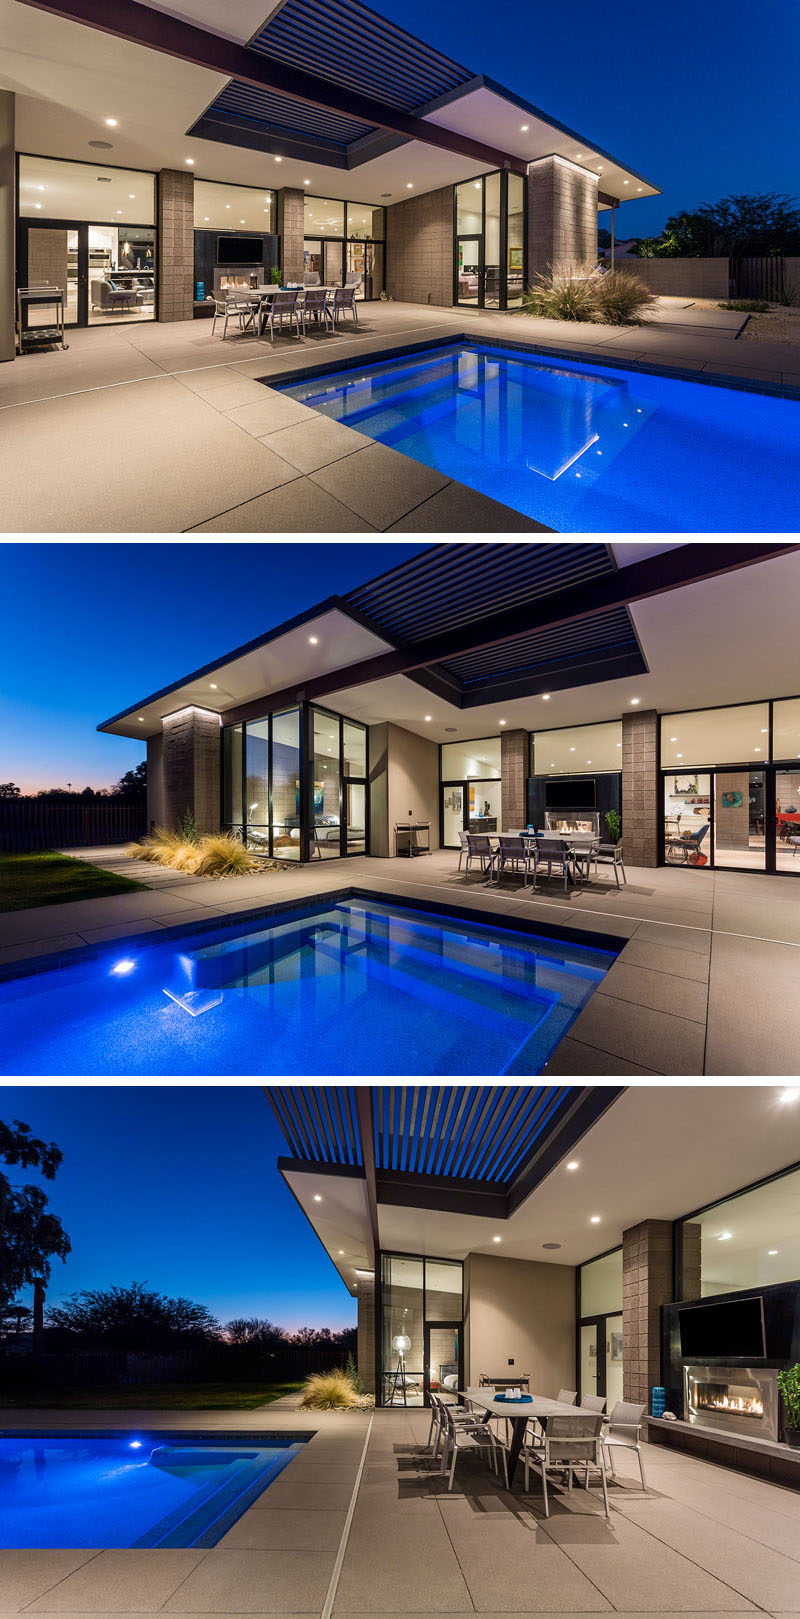 At the rear of this modern house, is a swimming pool and outdoor dining area, that are both centered on two-sided fireplace element. #ModernHouse #SwimmingPool #OutdoorDining